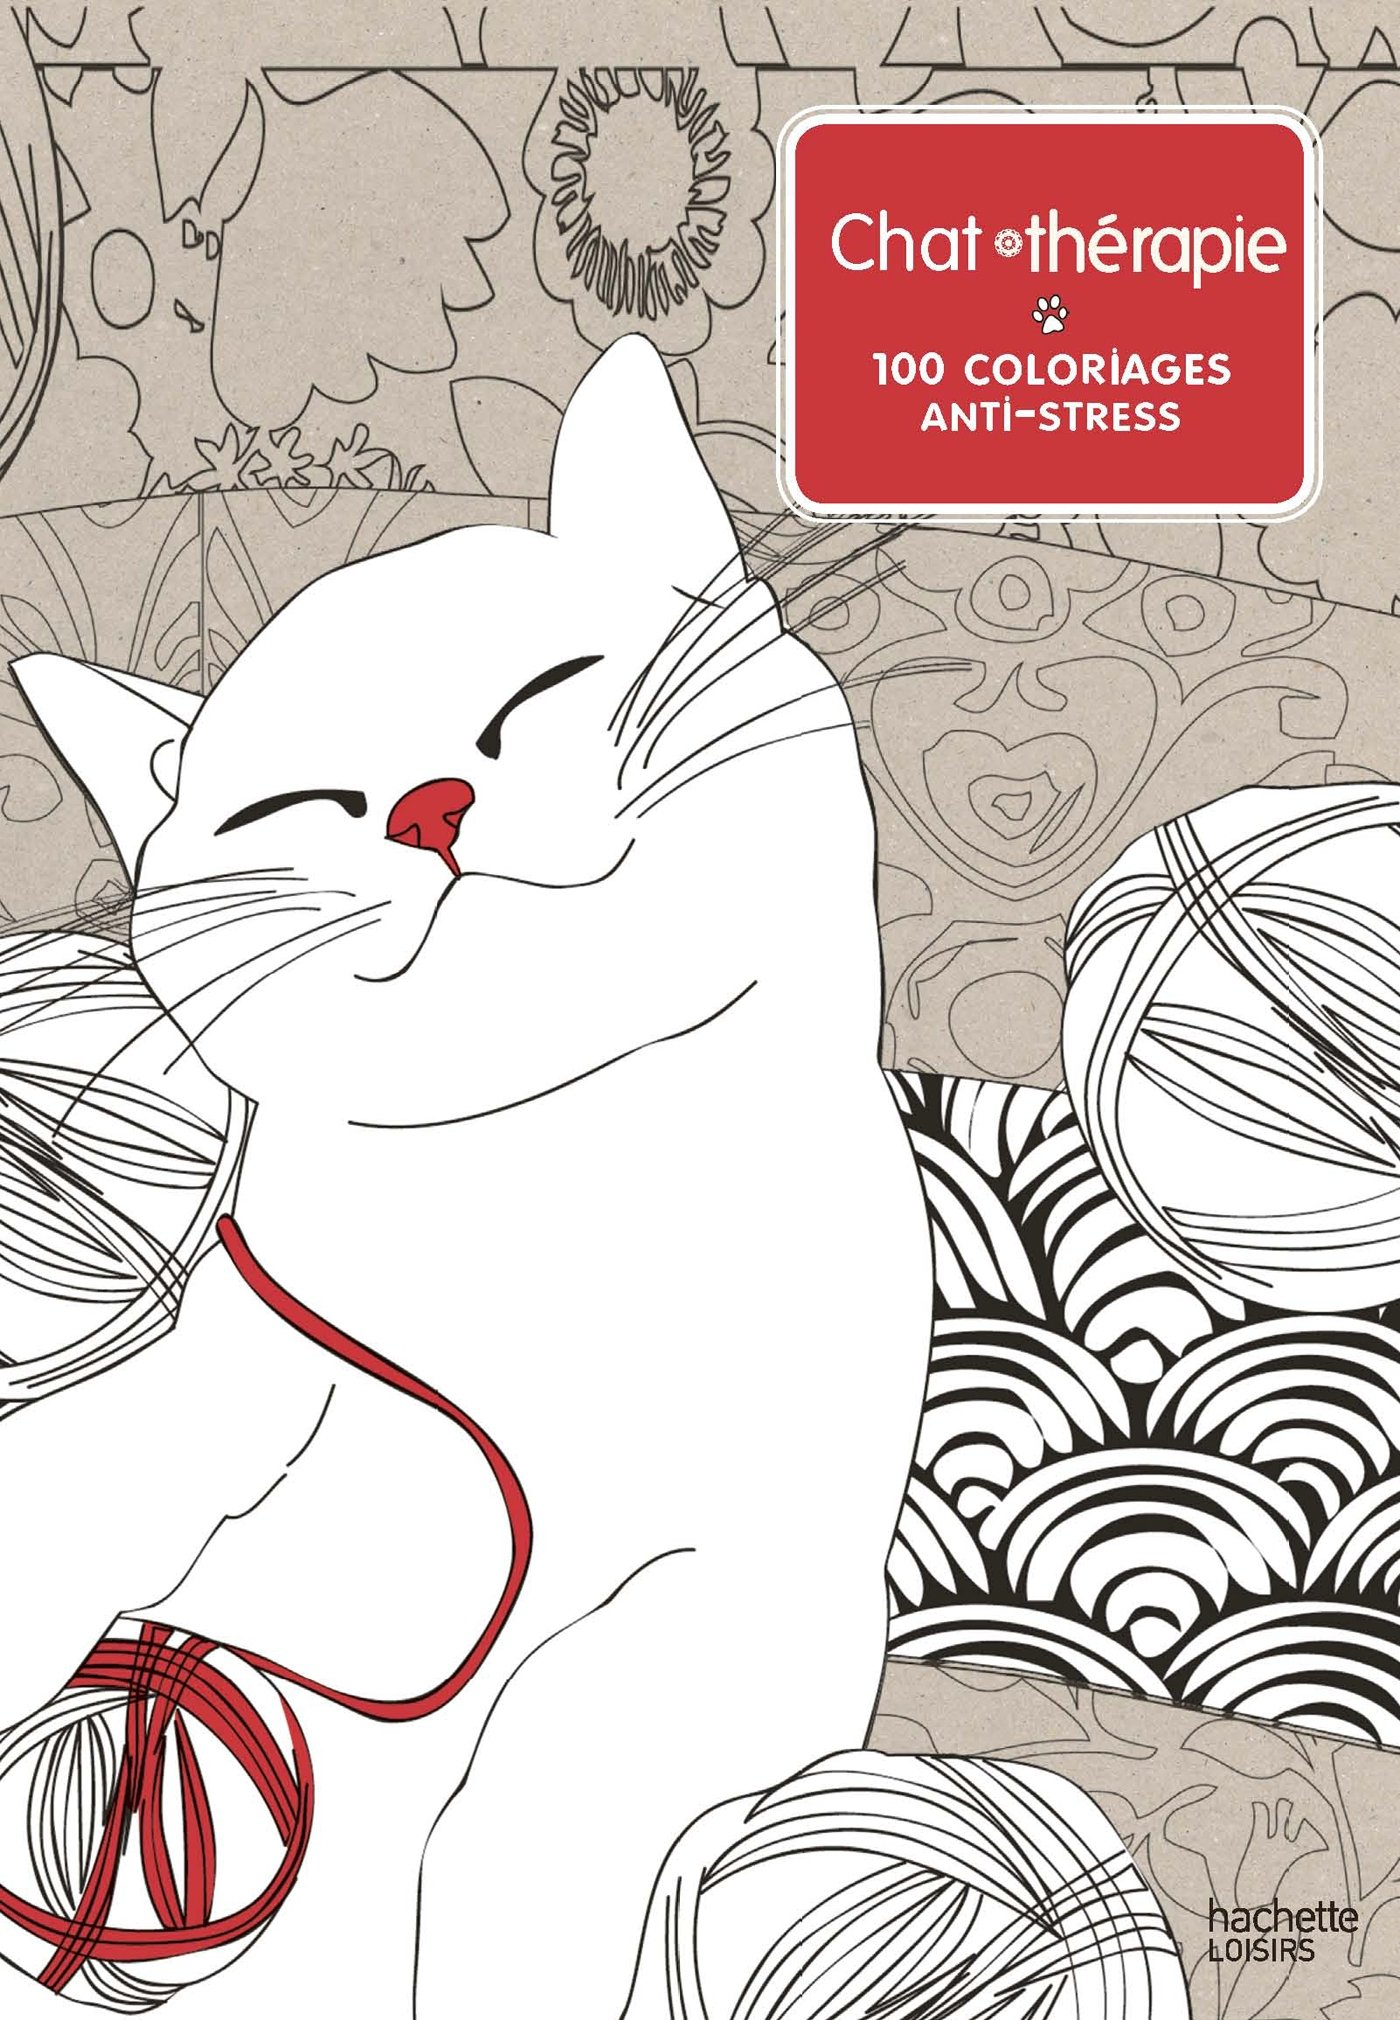 Download Art therapie Chat therapie : 100 coloriages anti - stress (French Edition) ebook